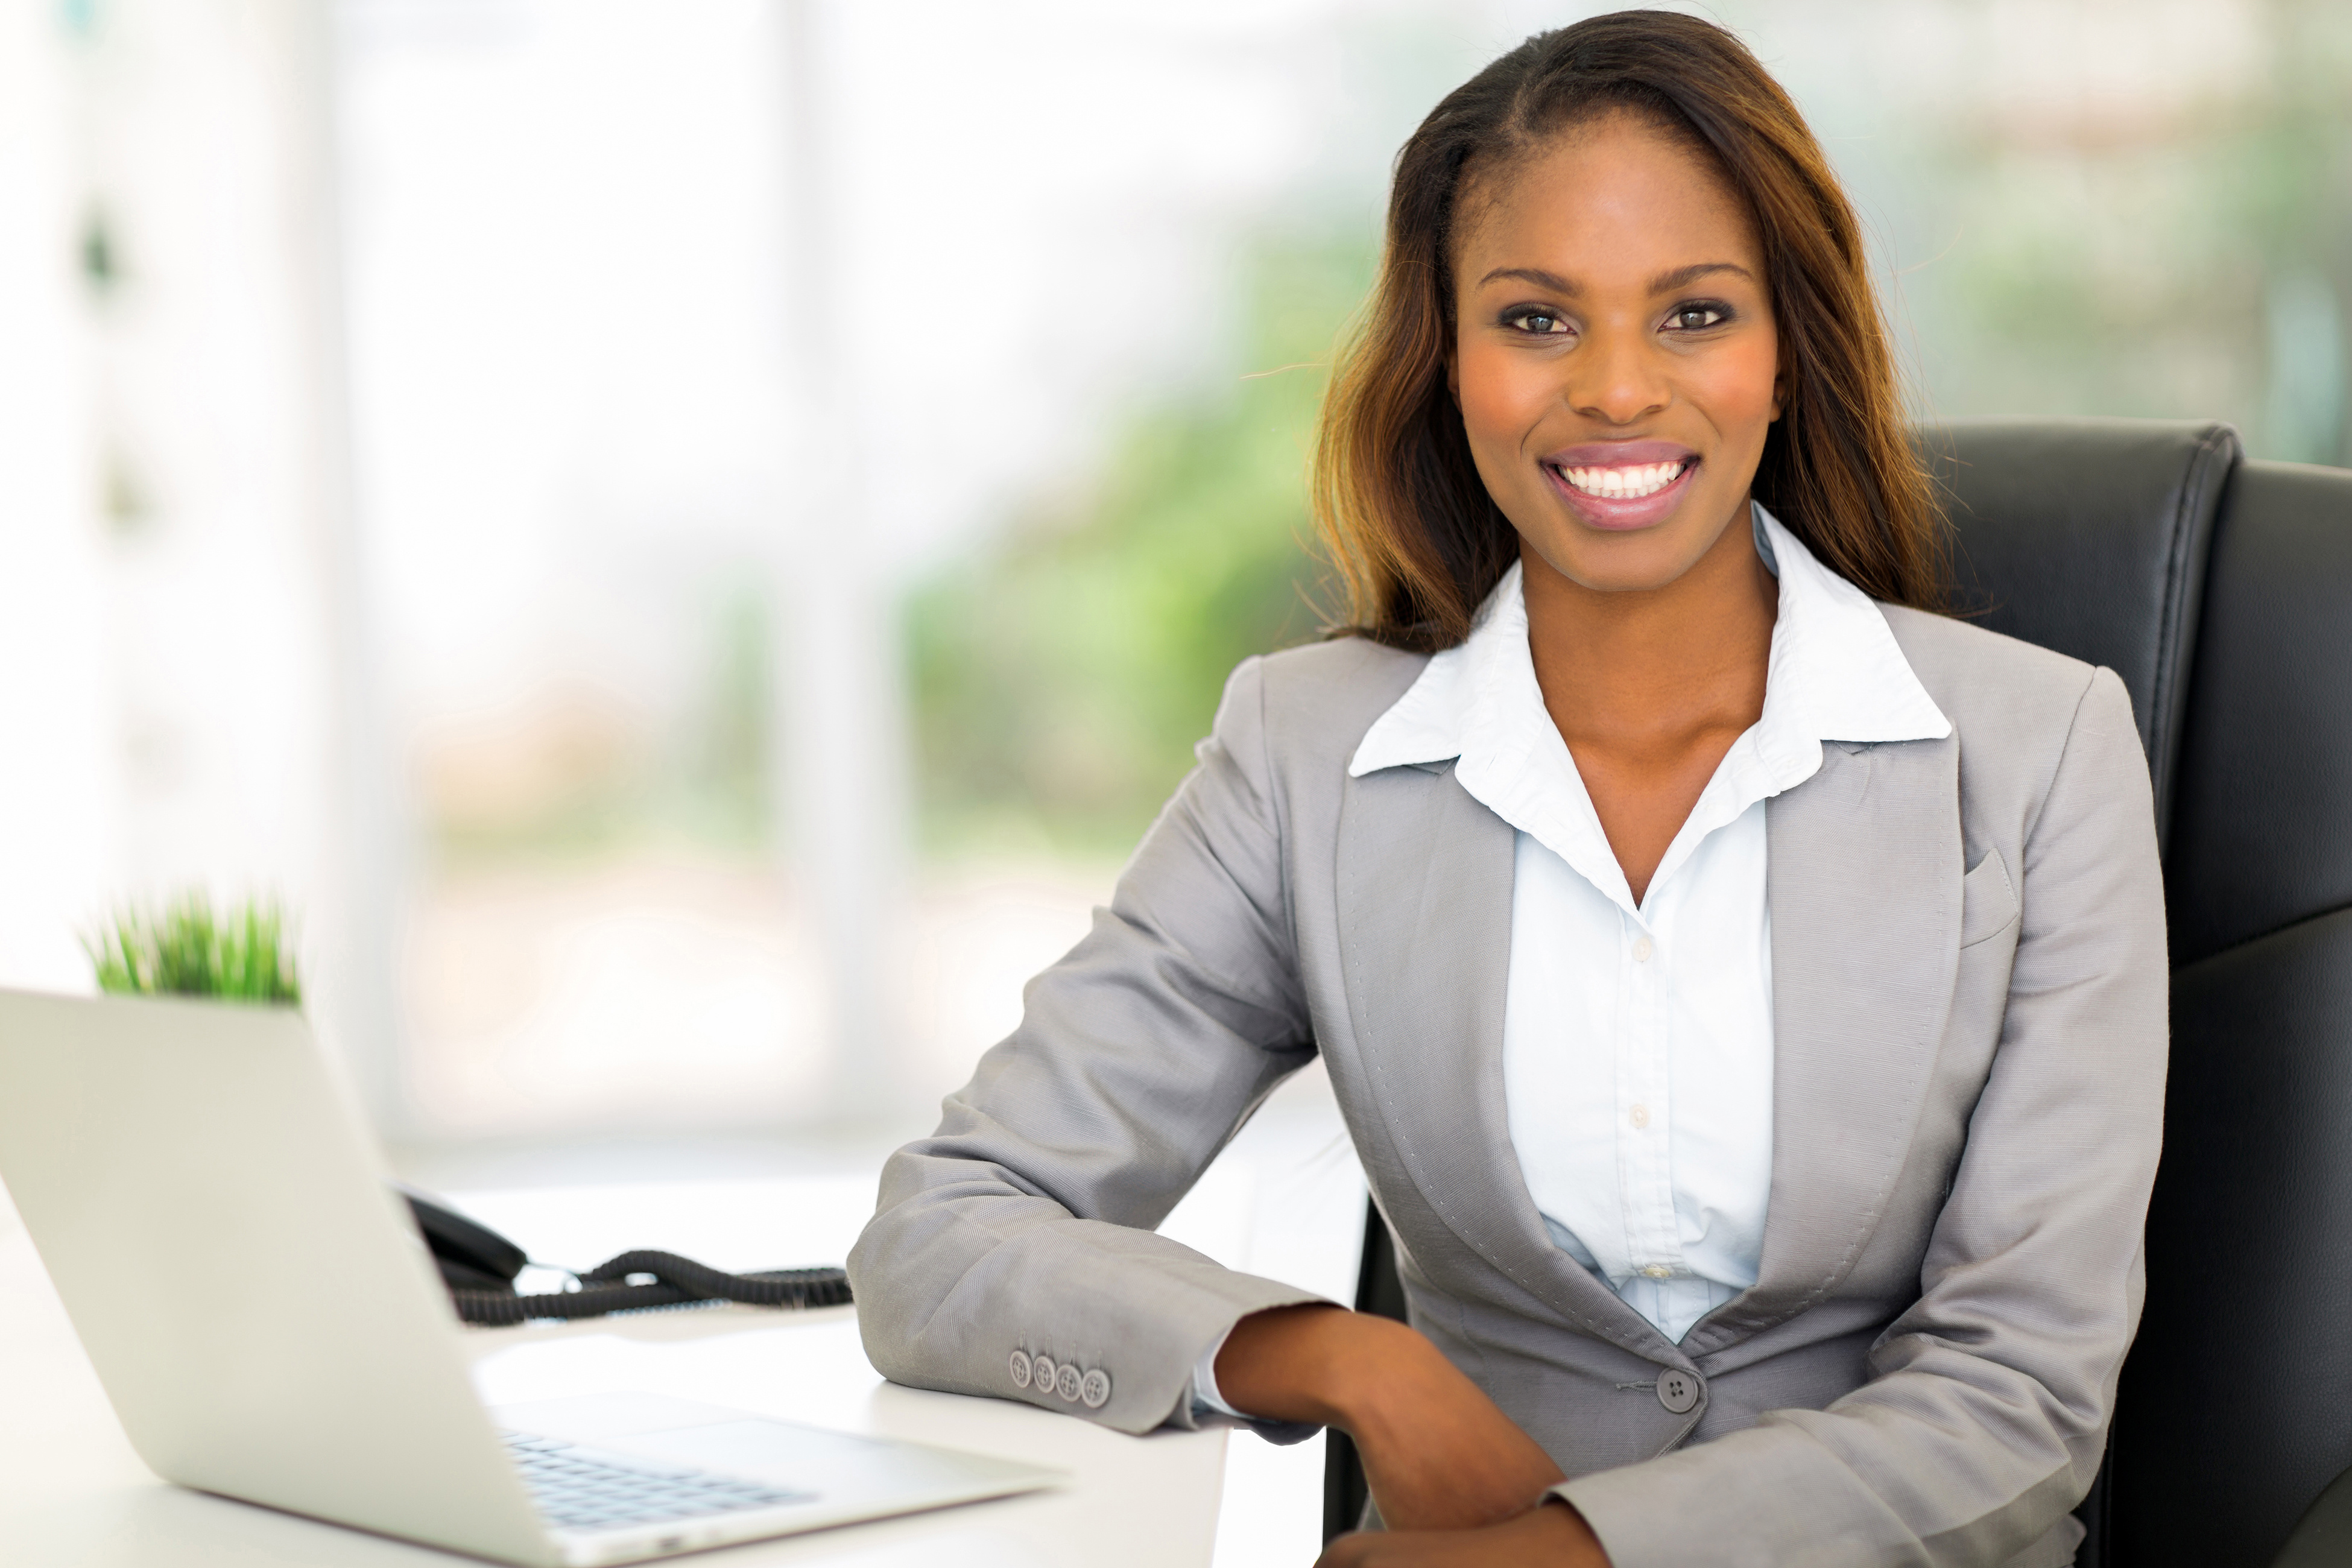 challenges faced by women bpo Female ceos shared their insights into the challenges faced by their fellow women business owners 7 challenges women entrepreneurs face (and how to overcome them).